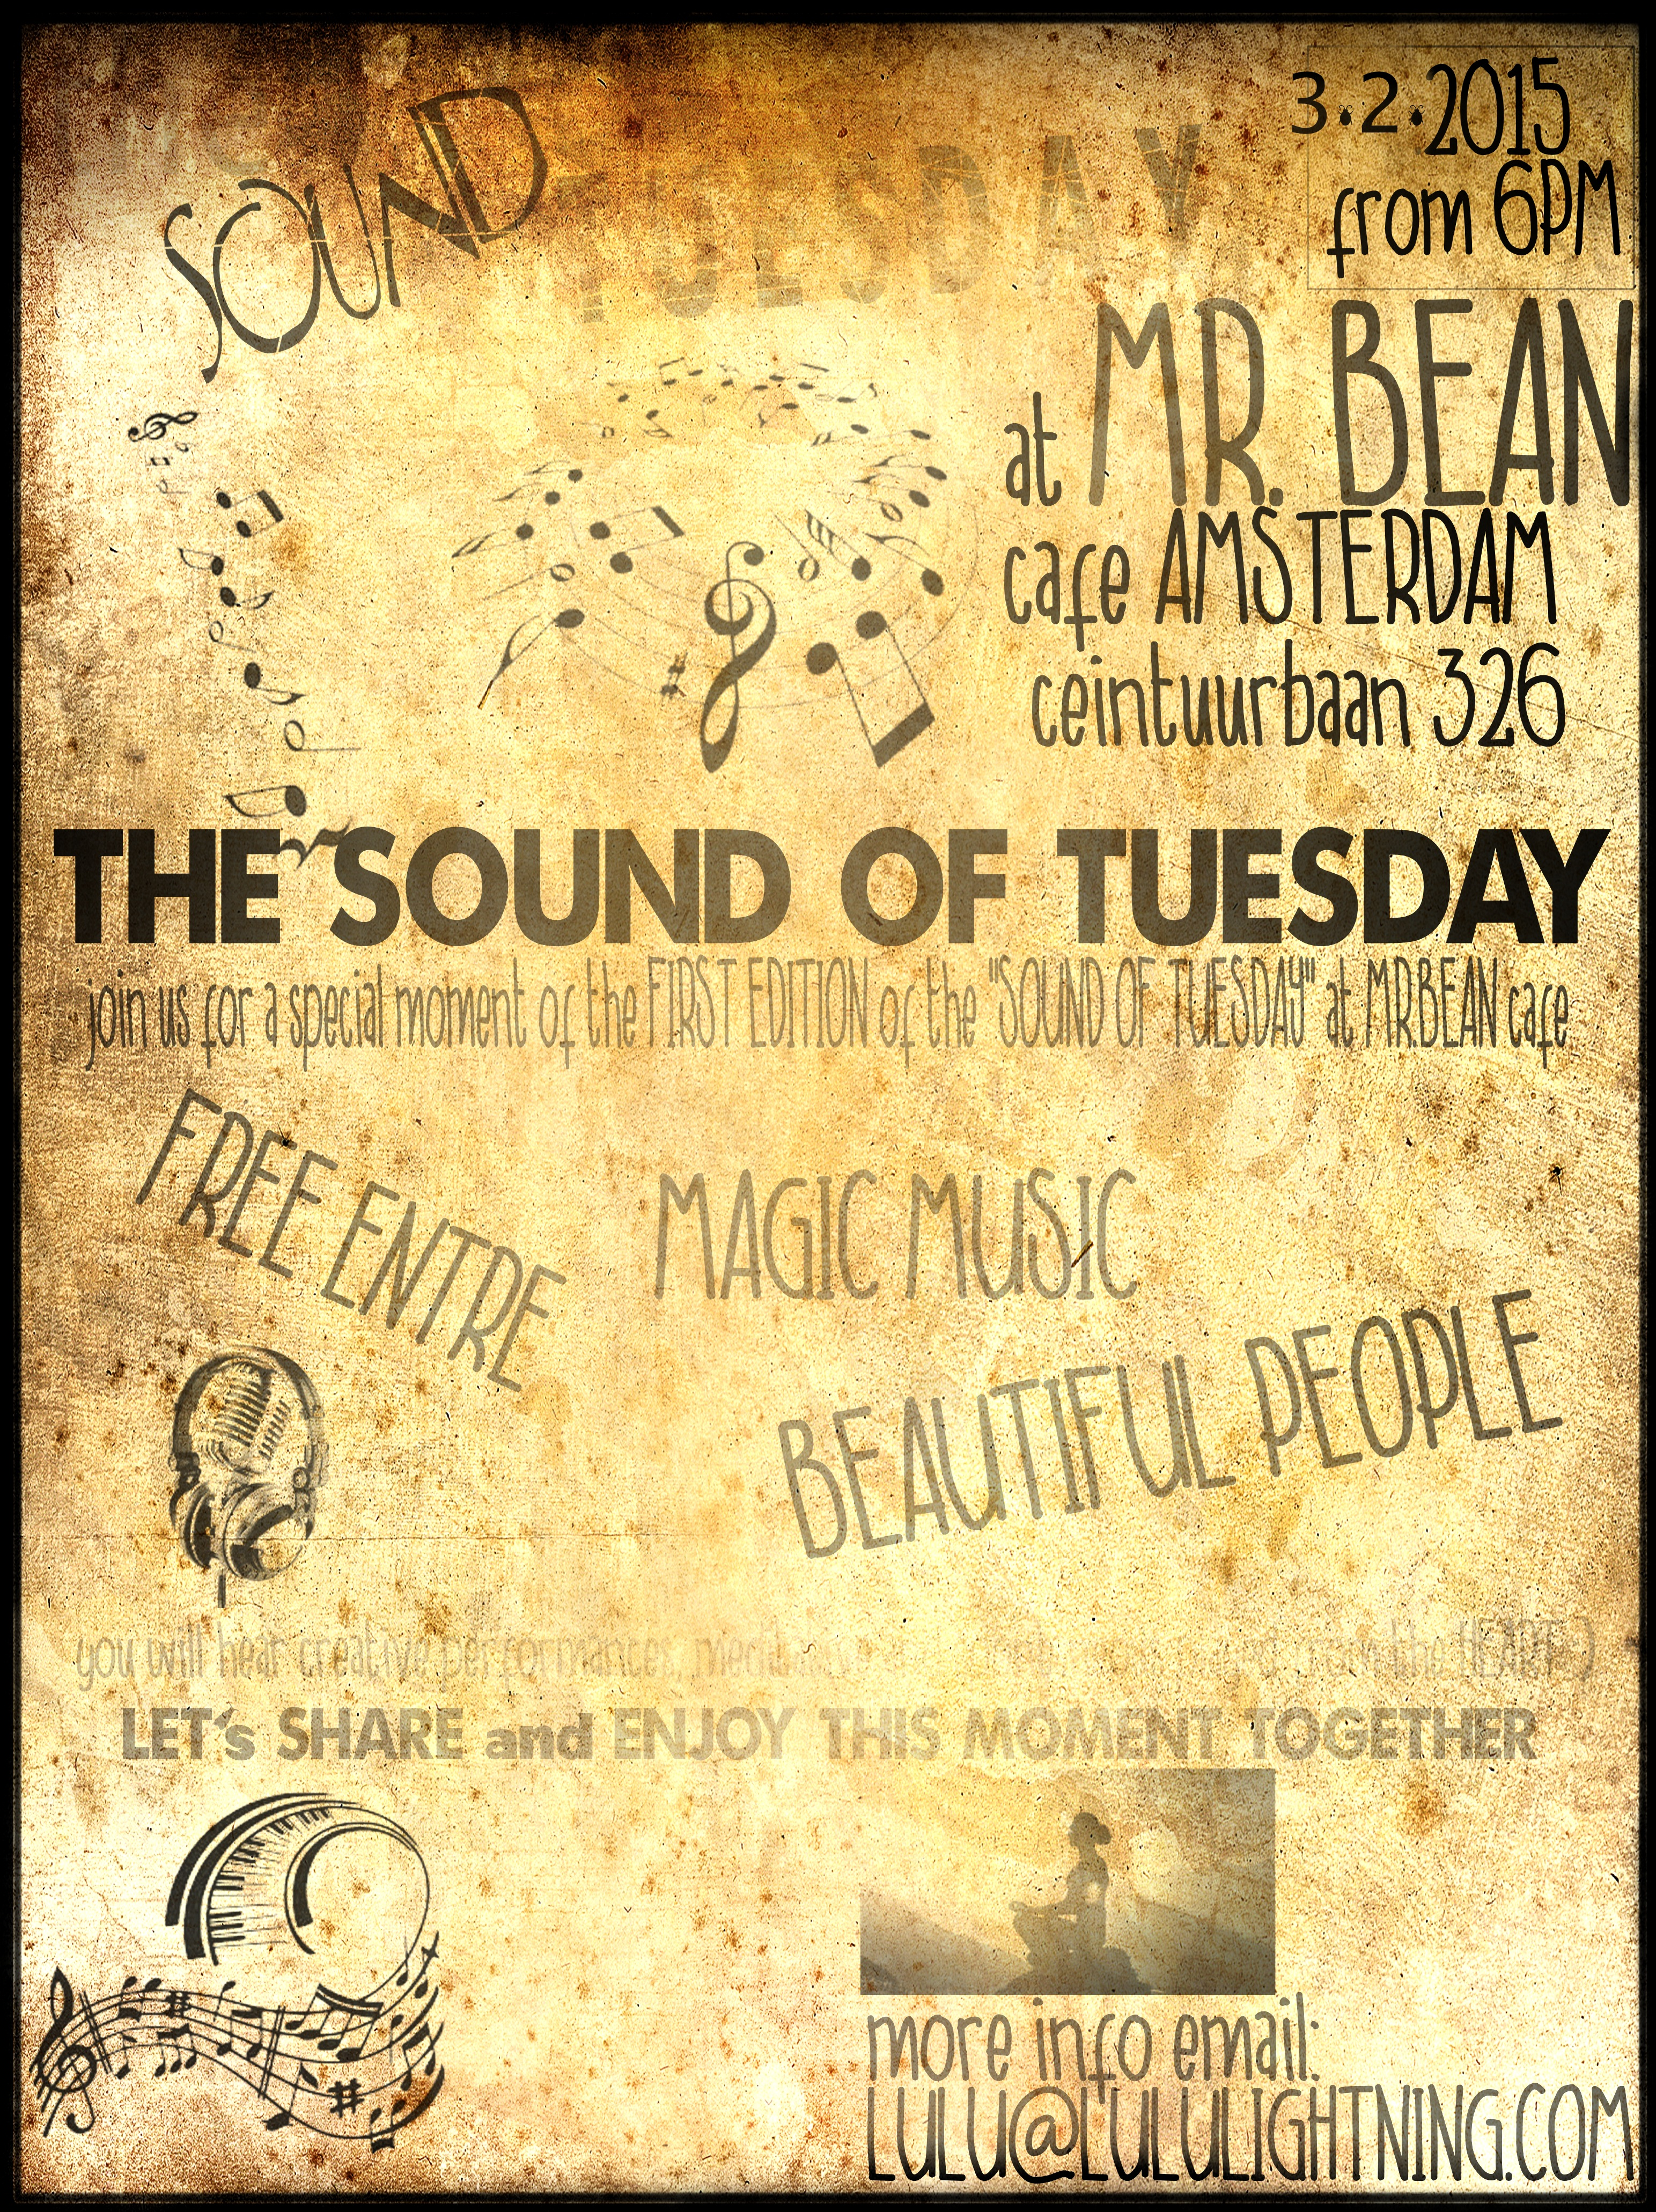 the Sound Of Tueaday at Mr Bean Cafe Amsterdam with Xenia and Violinna - meditative improvisation